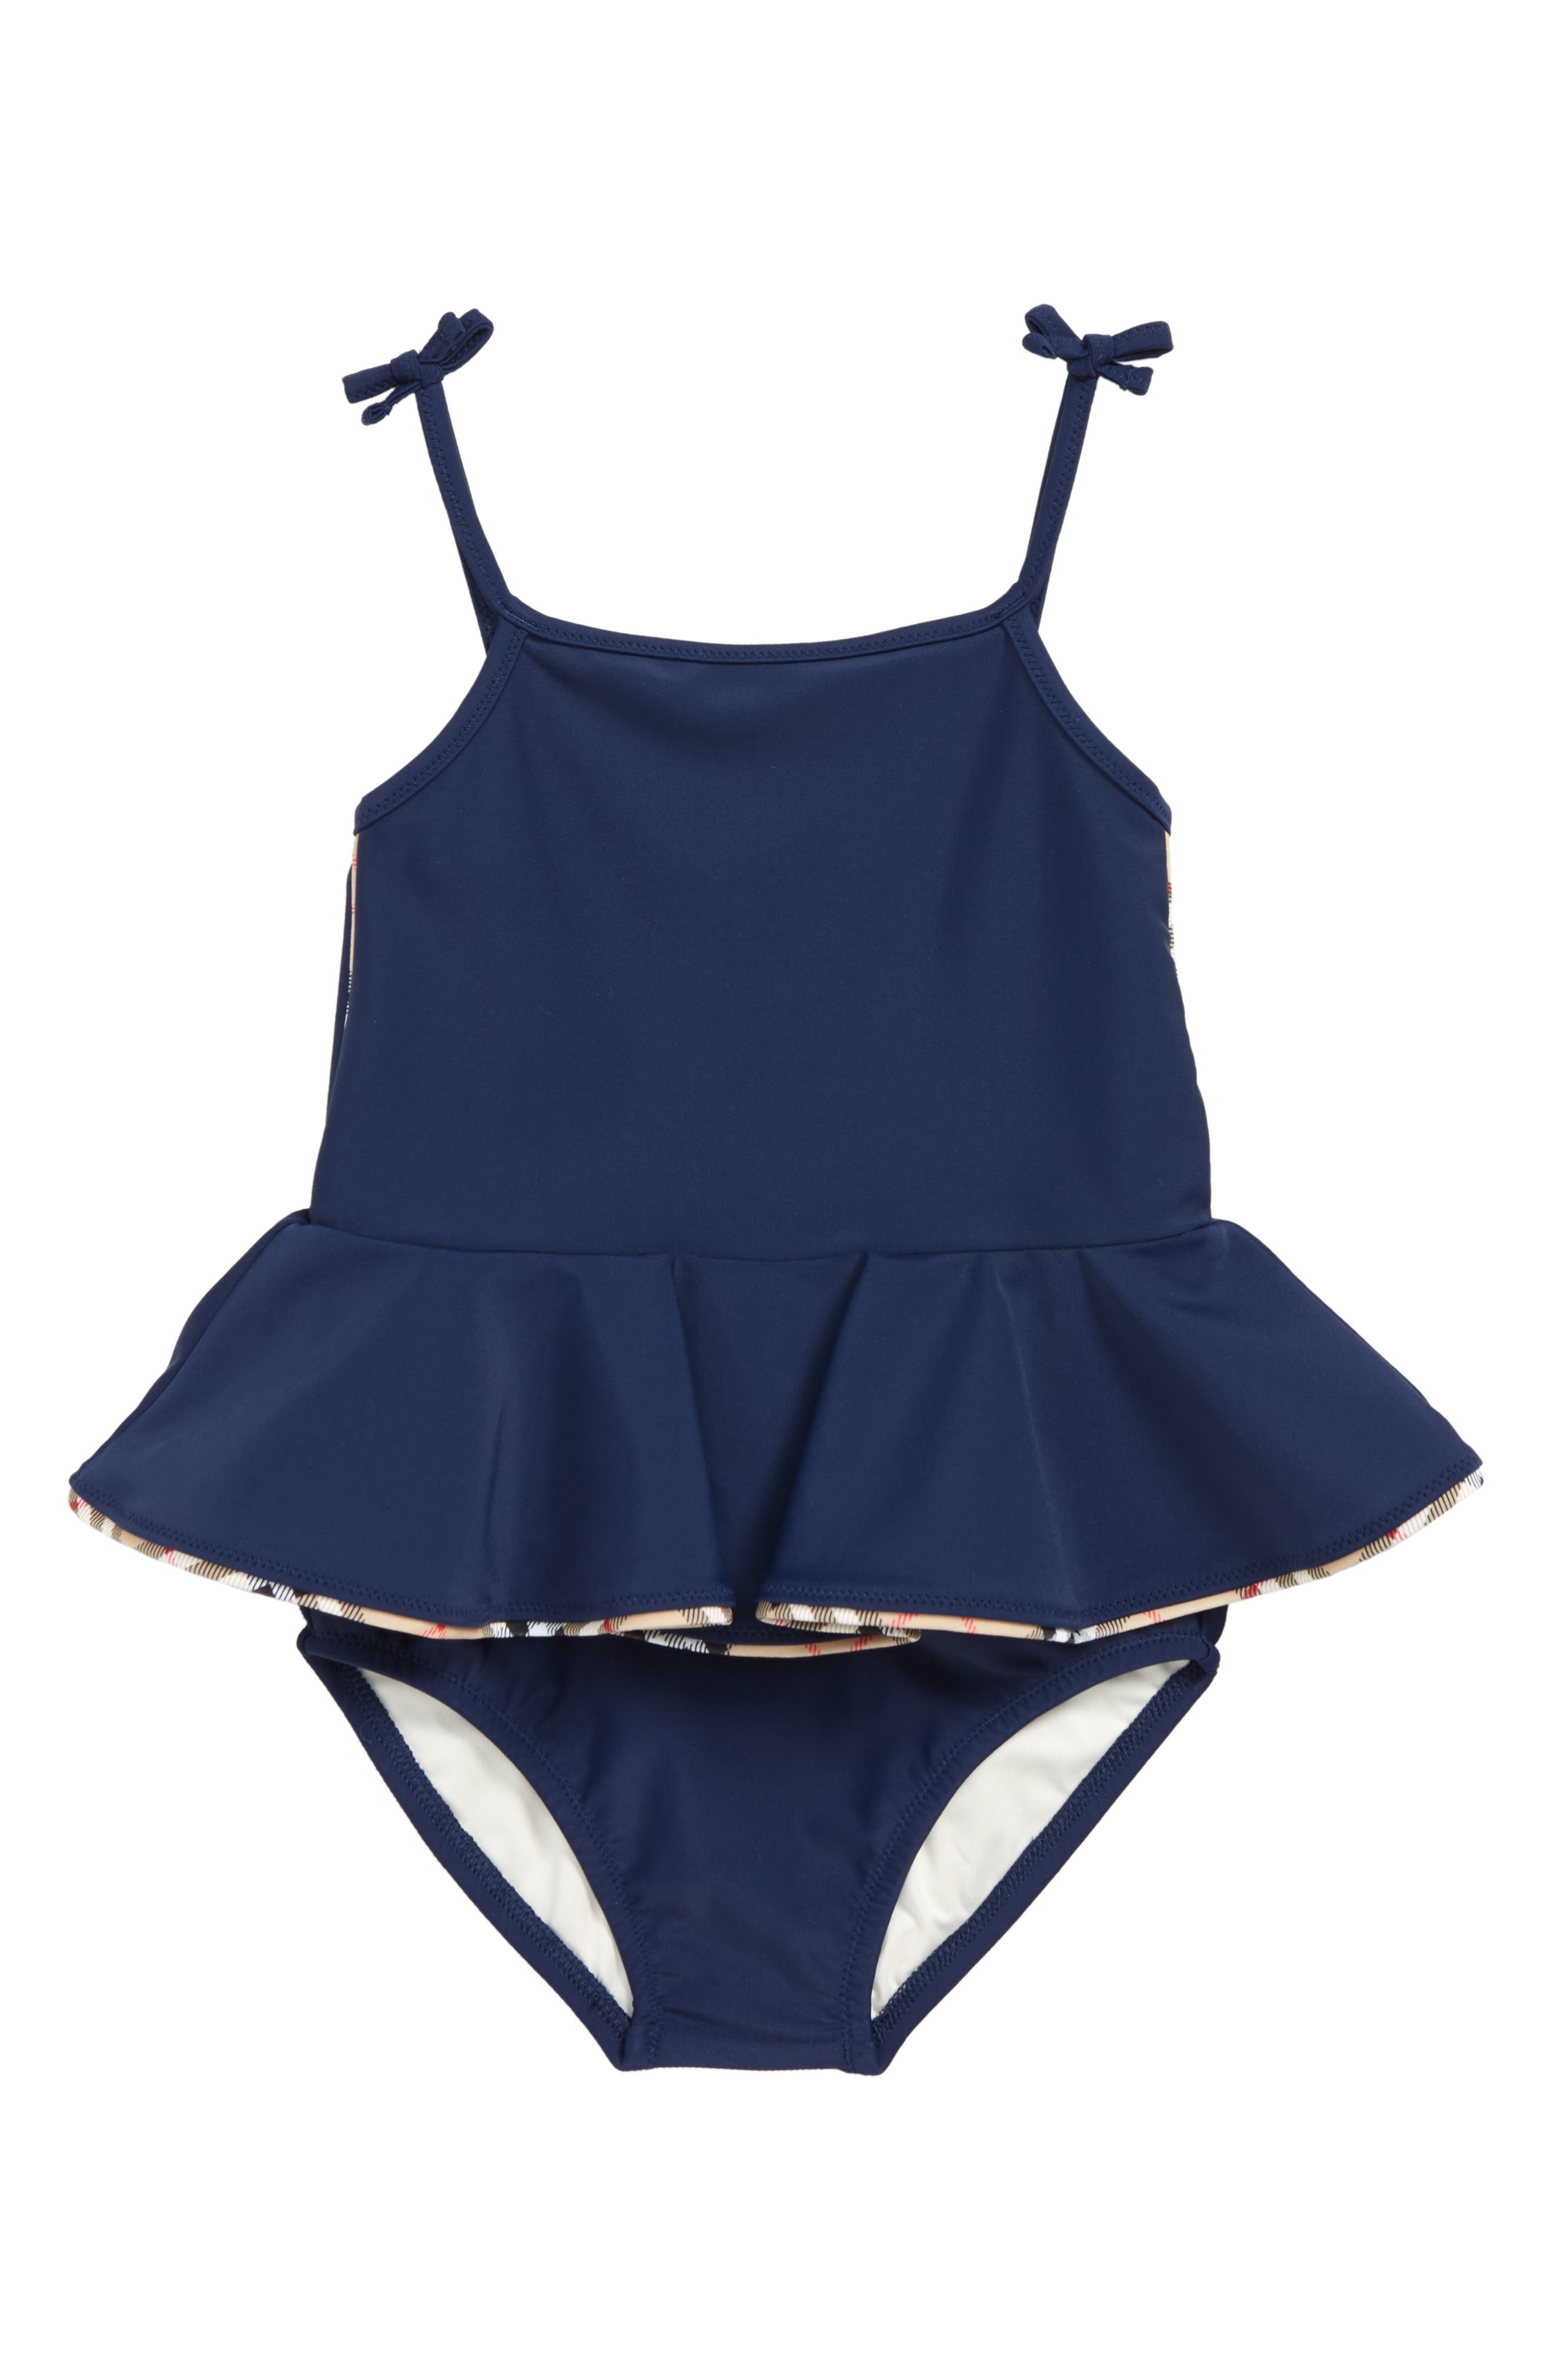 Ludine Skirted One-Piece Swimsuit,                             Main thumbnail 1, color,                             NAVY